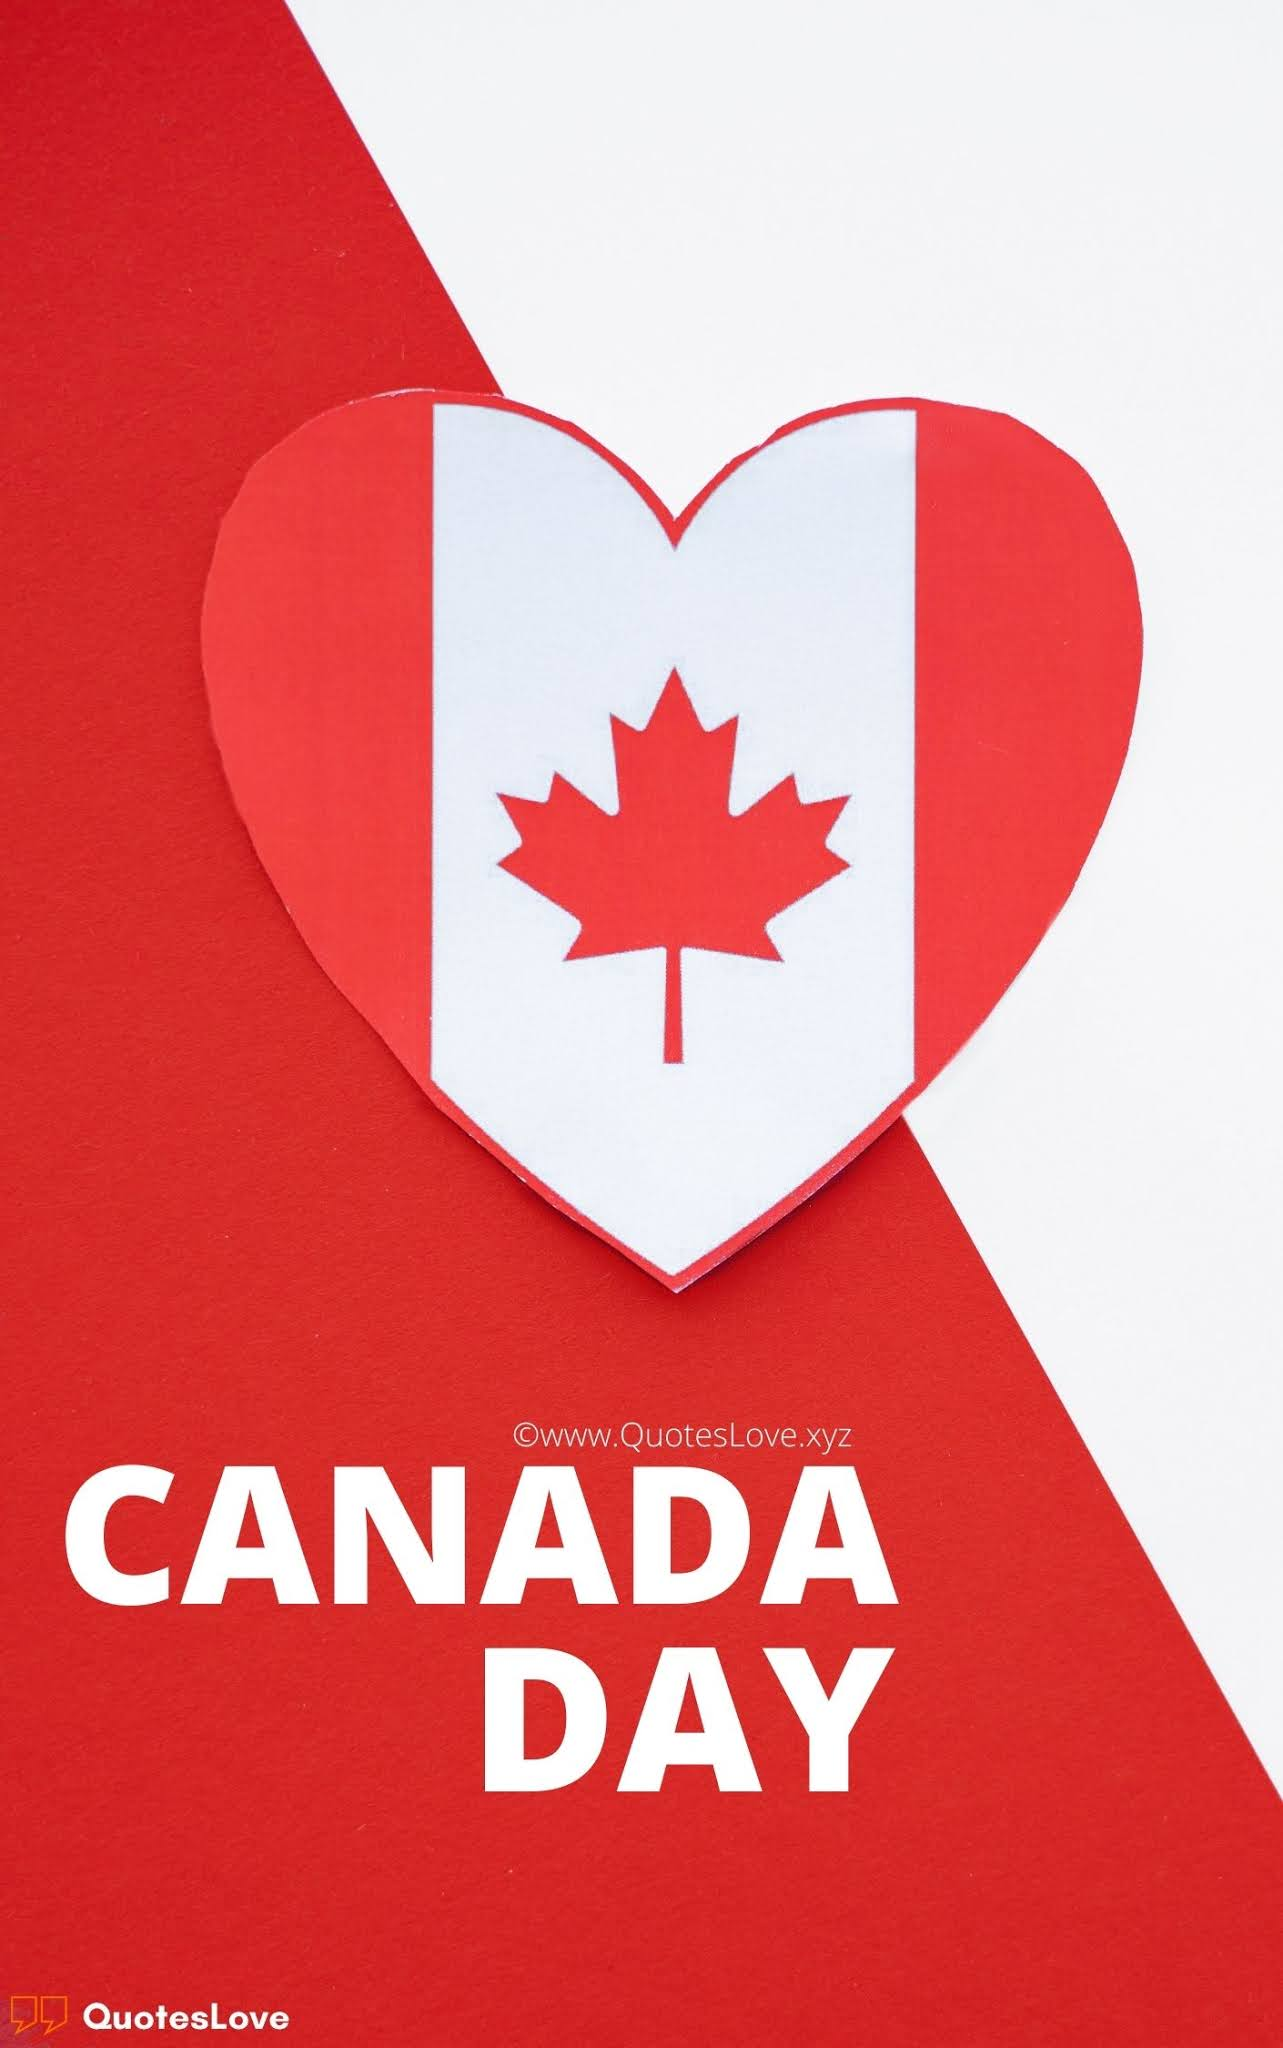 CANADA DAY 2021 Images, Pictures, Wallpaper, Photos